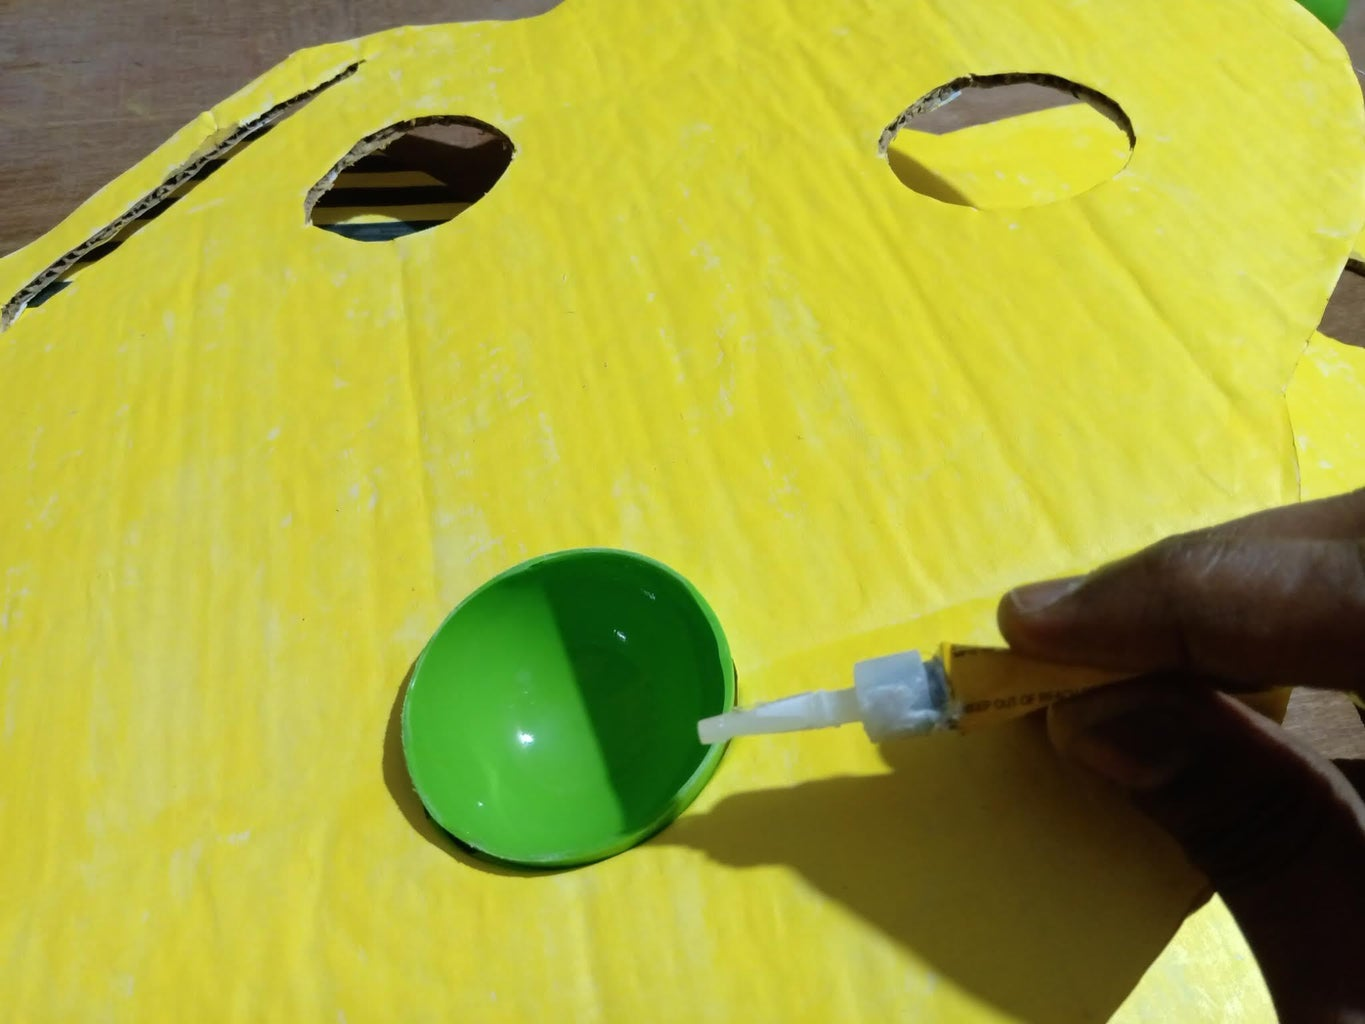 Colour Palette : Glue the Plastic Balls (turned Into Slots) to the Cardboard Base